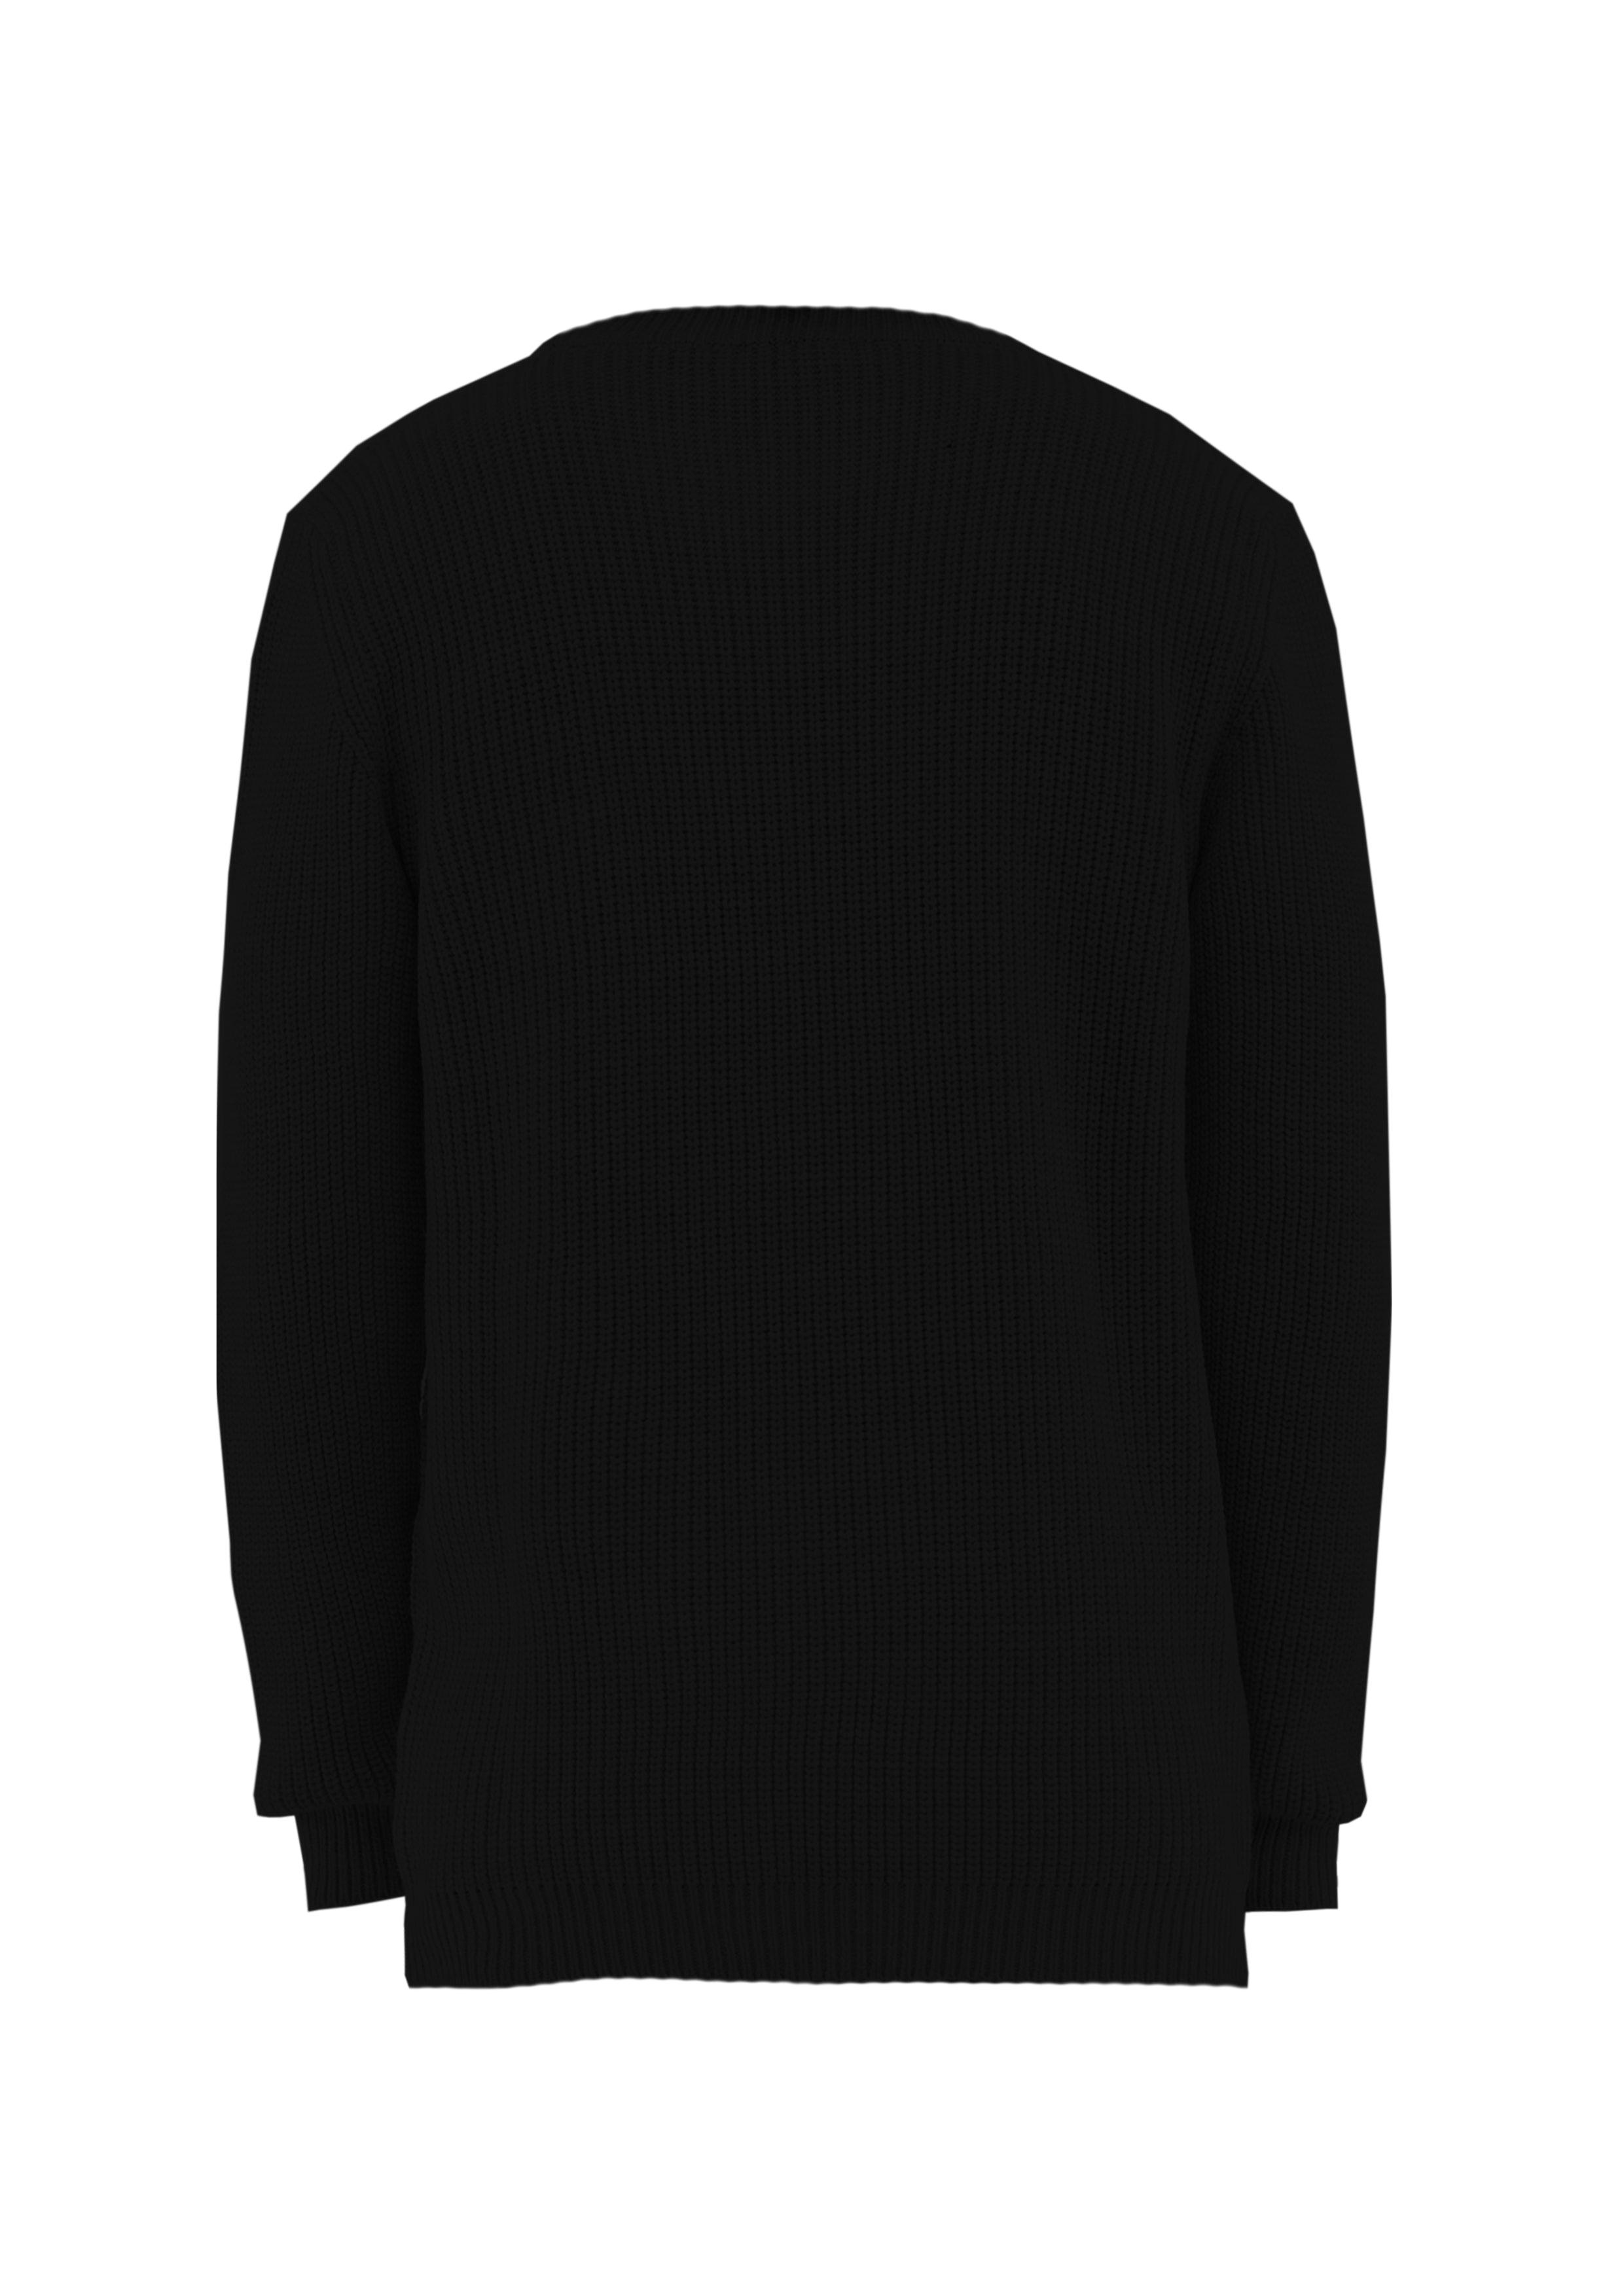 Sweater Over Black